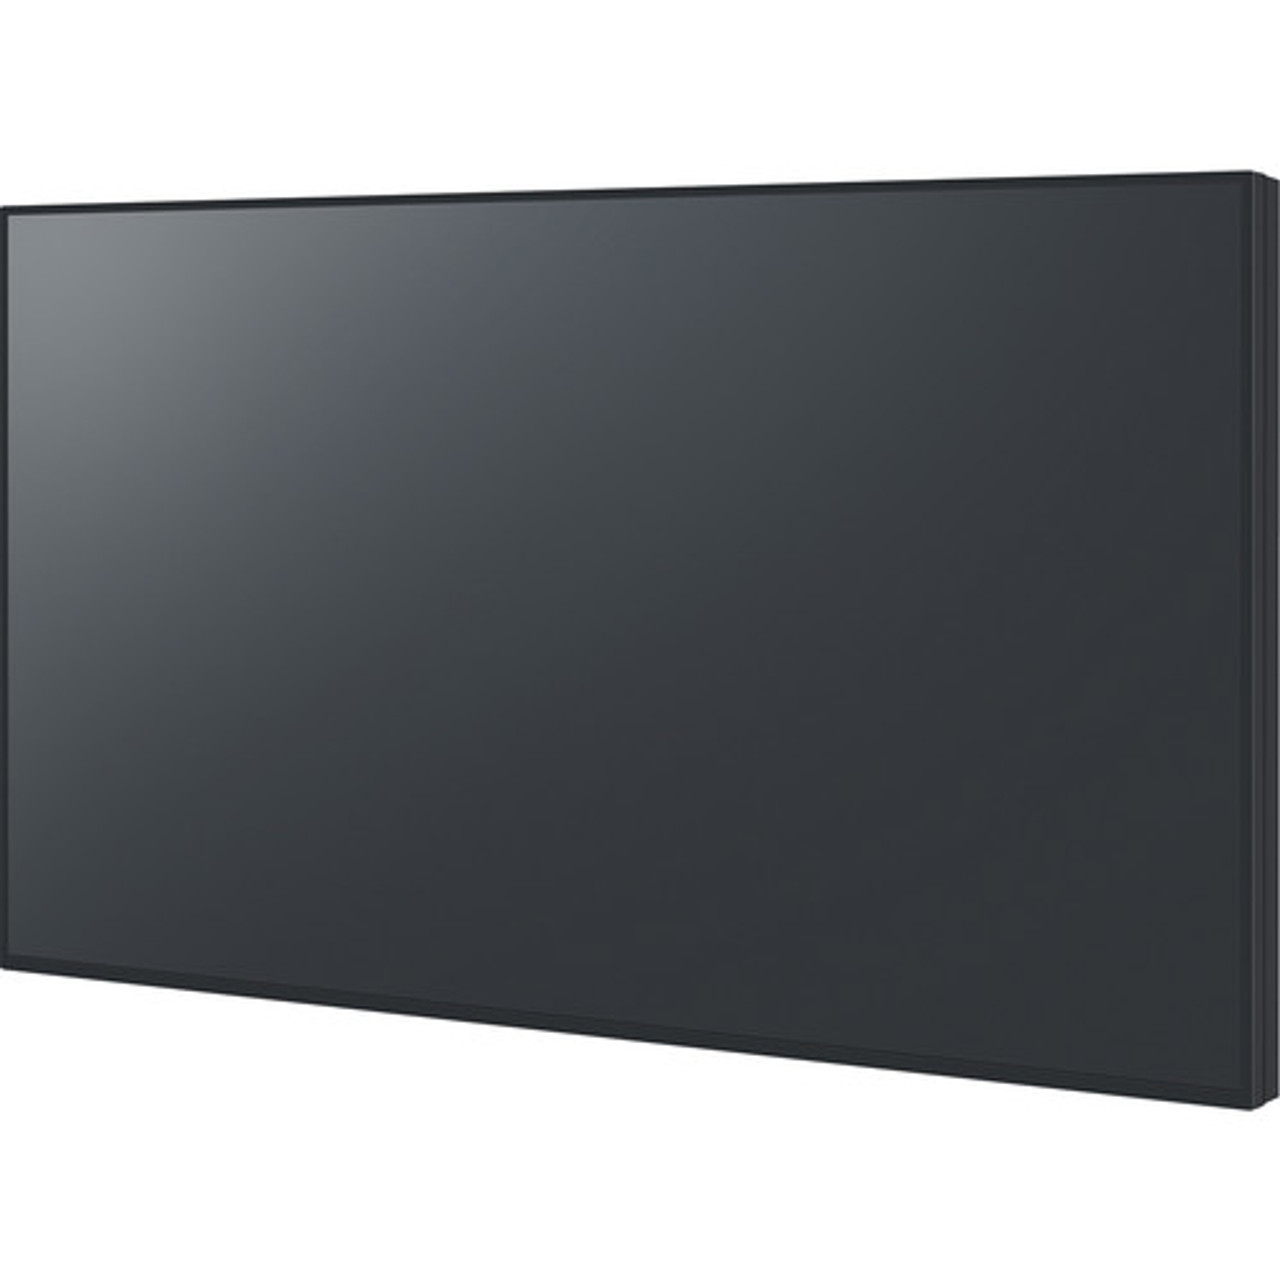 "Panasonic TH-55SF2U 55"" Class Standard Professional Display (885170314764)"